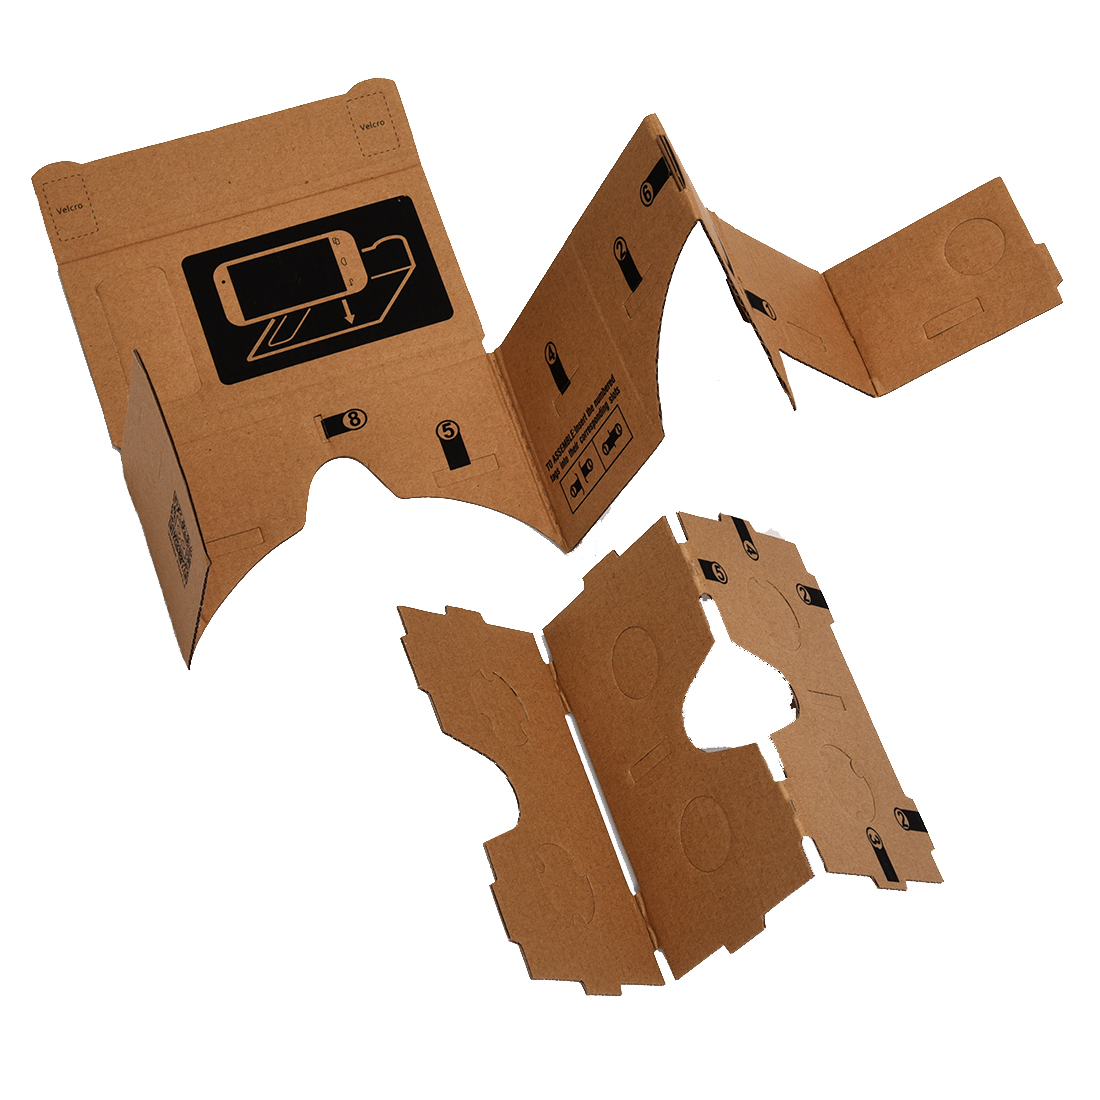 ETC Mobile phone cardboard quality 3D Virtual Reality Glasses